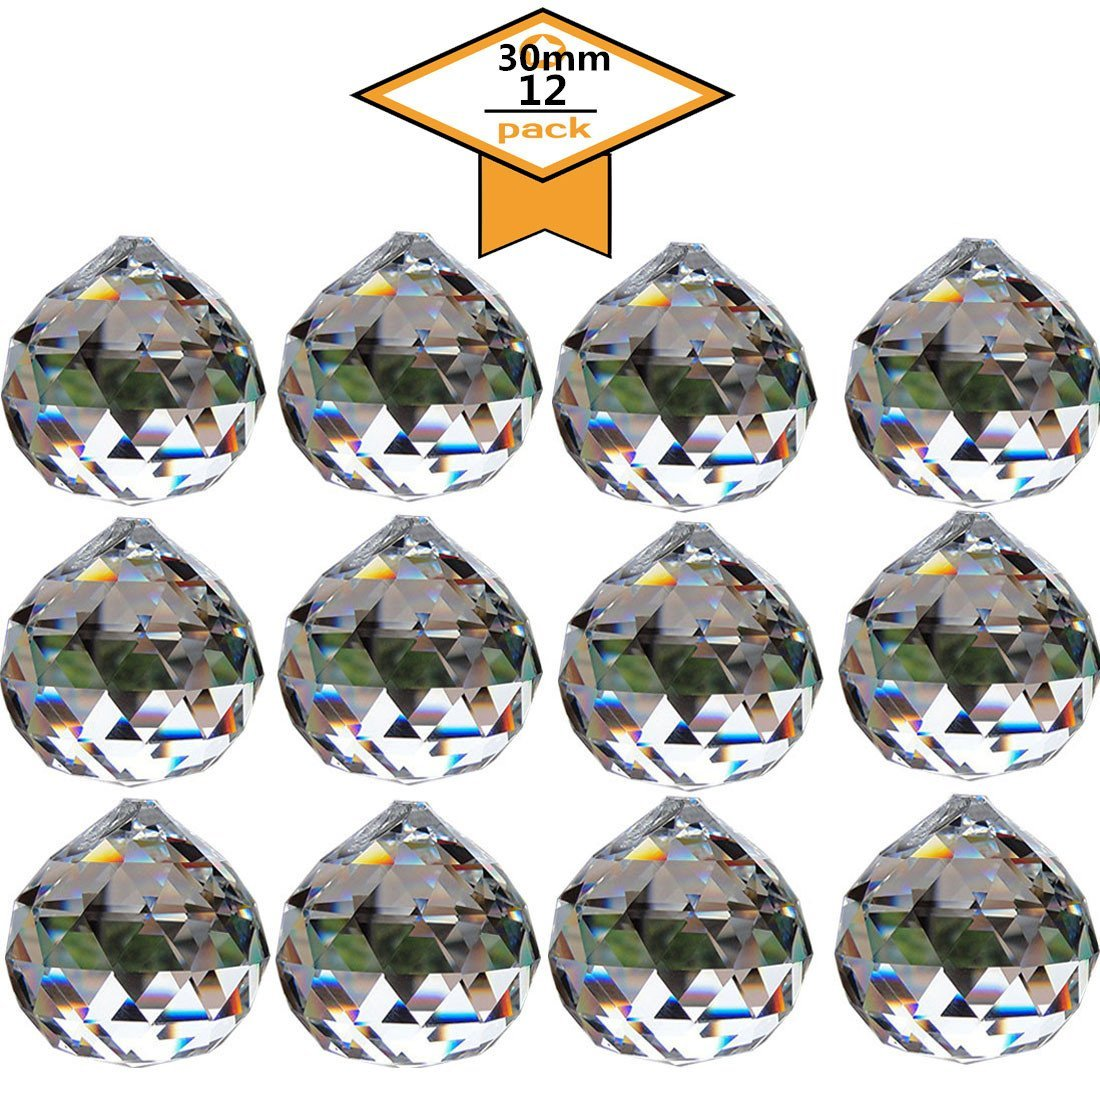 Yoker Clear Crystal Acrylic Ball Prisms Pendant Feng Shui Hanging Faceted Prism Balls Gems Bead Strands 16 Feet (12PCS X 30mm Clear)